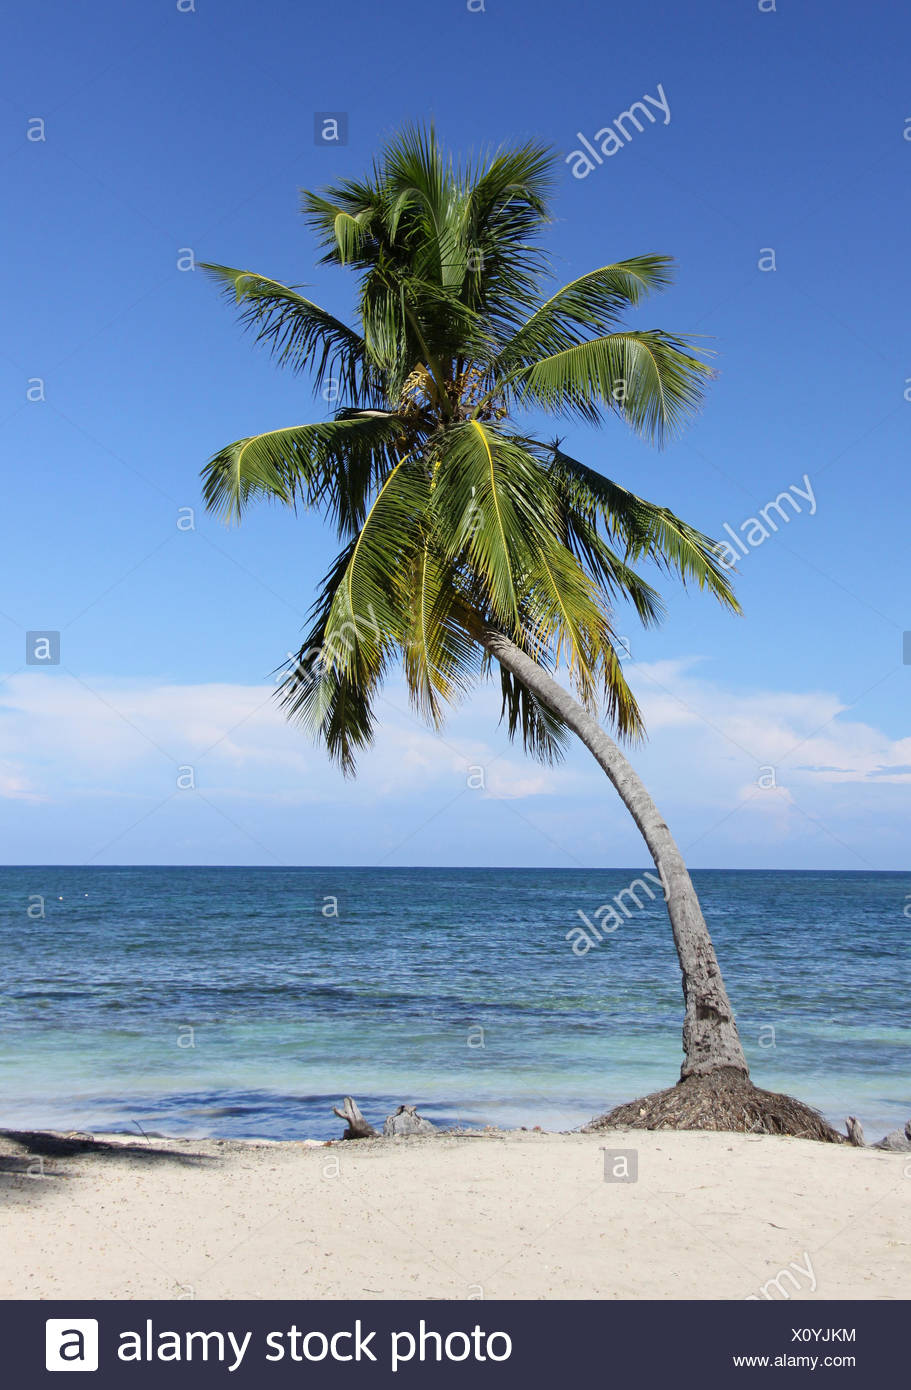 Lonely Palm tree Immagini Stock